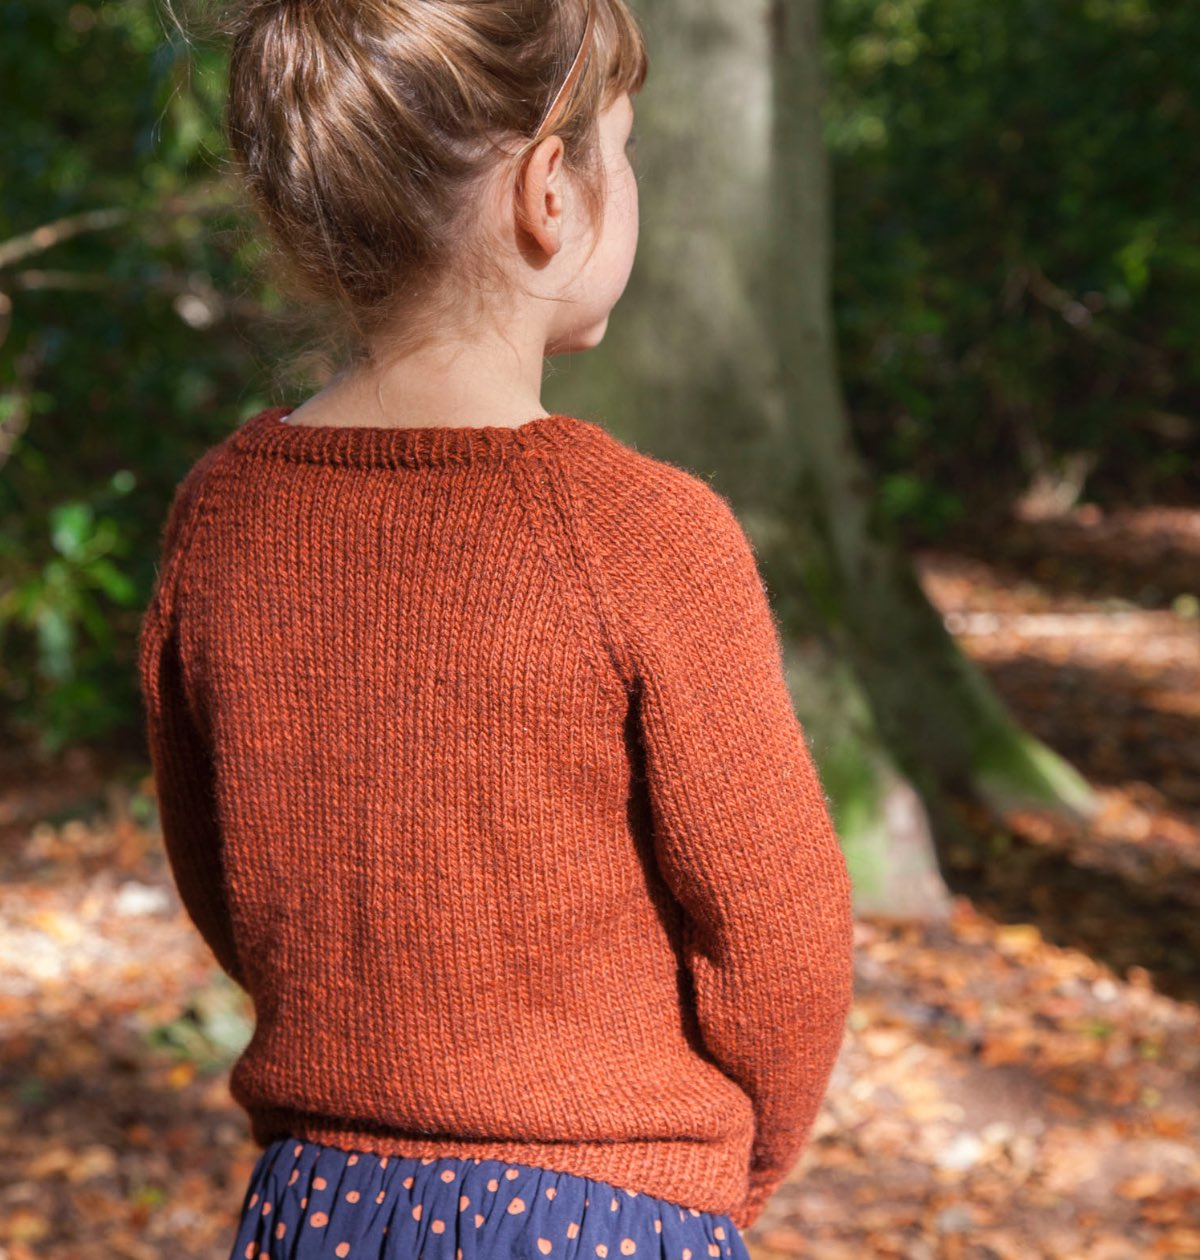 Knitting Sweater For Kids : Quokka sweater knitting pattern for kids compagnie m